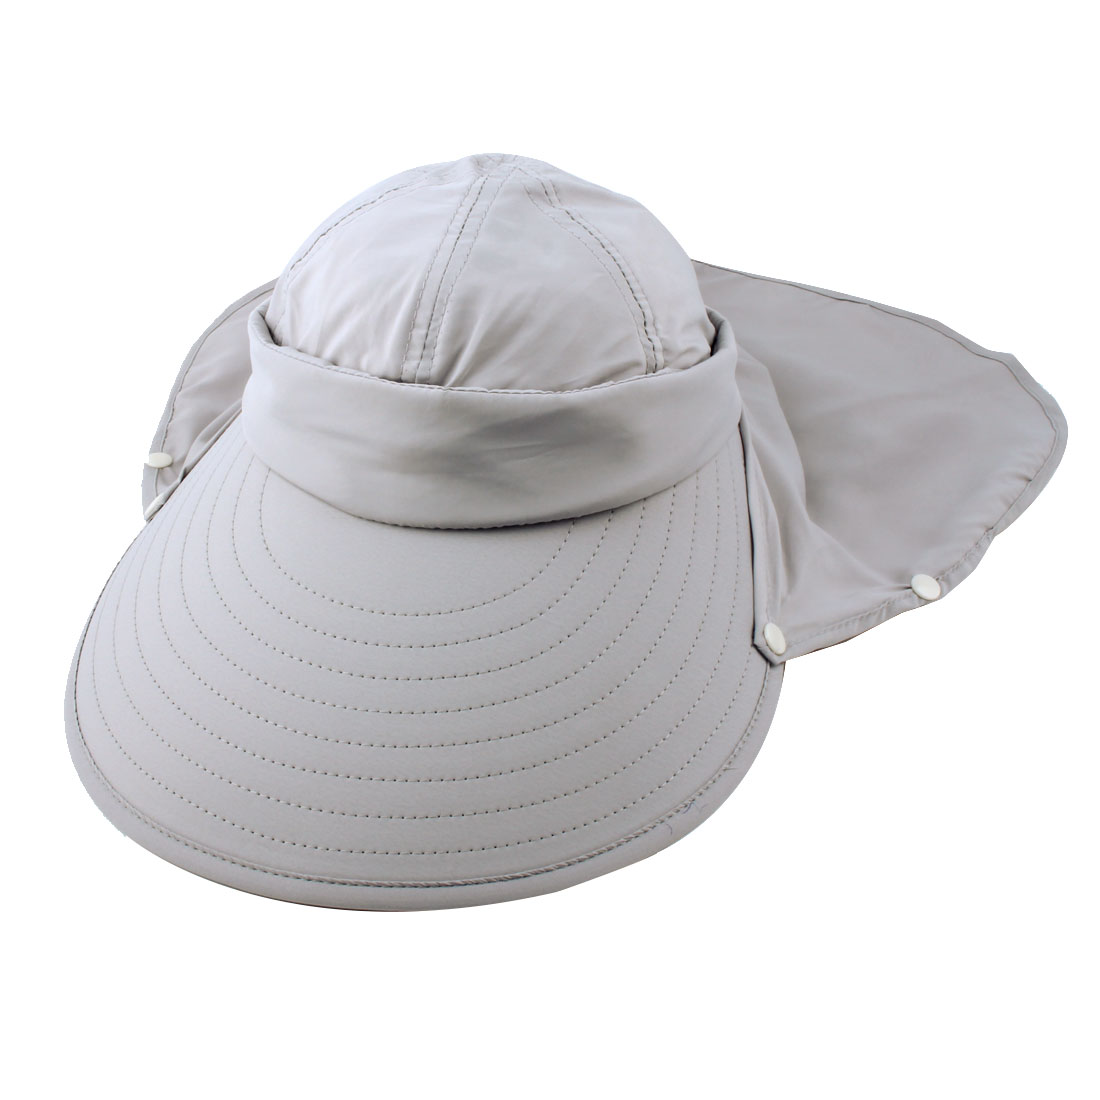 Lady Outdoor Summer Cotton Blends Wide Brim Face Neck Cover Sun Visor Protector Hat Gray